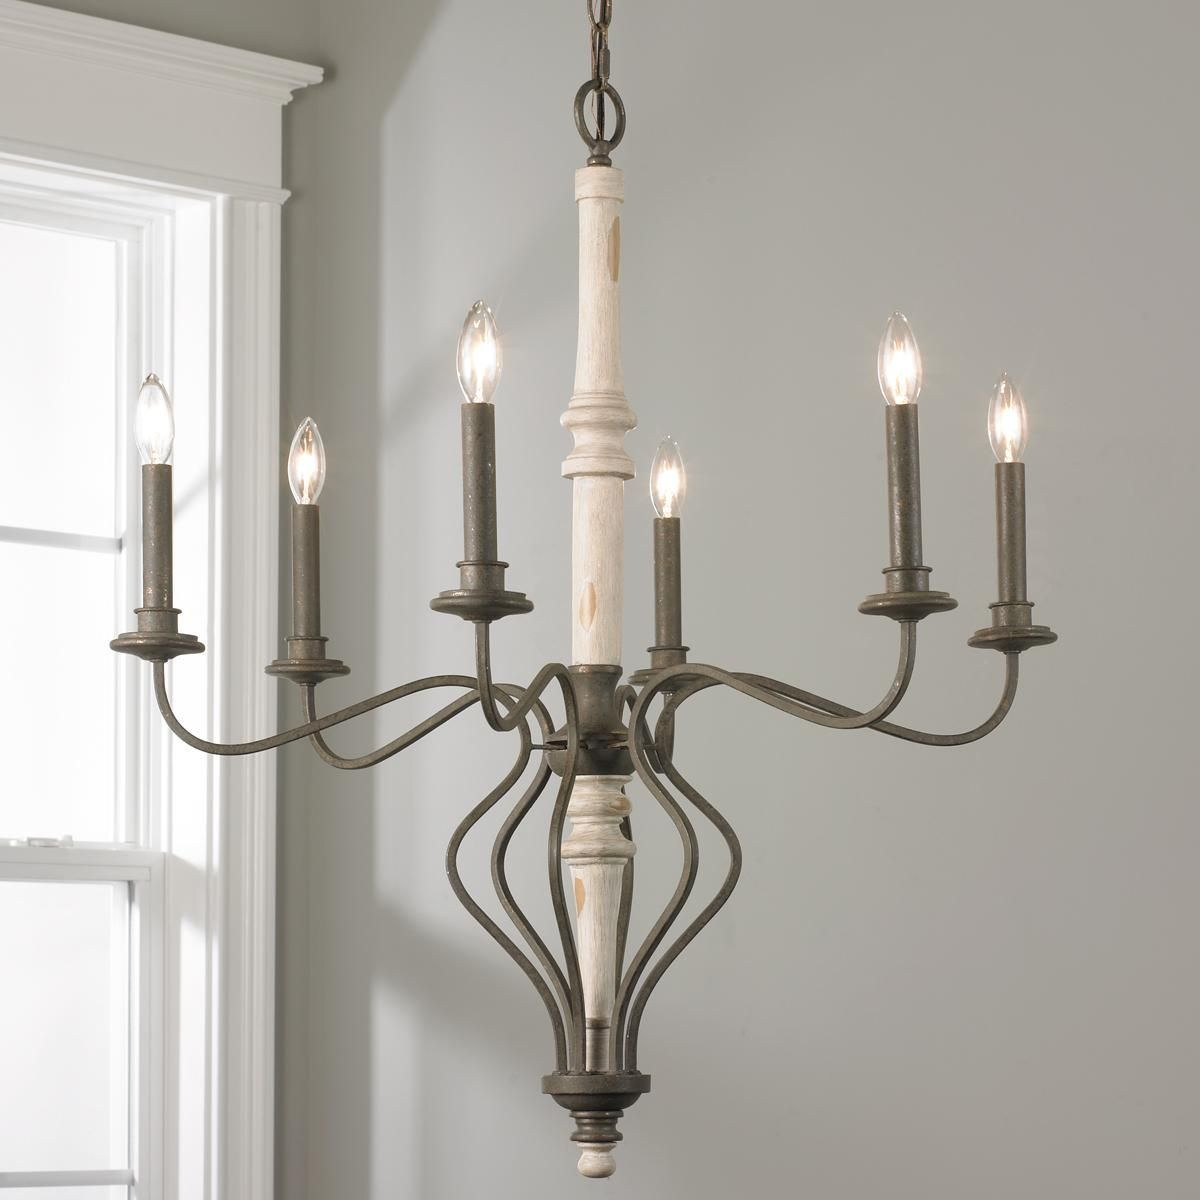 French Country Curve Chandelier - Small